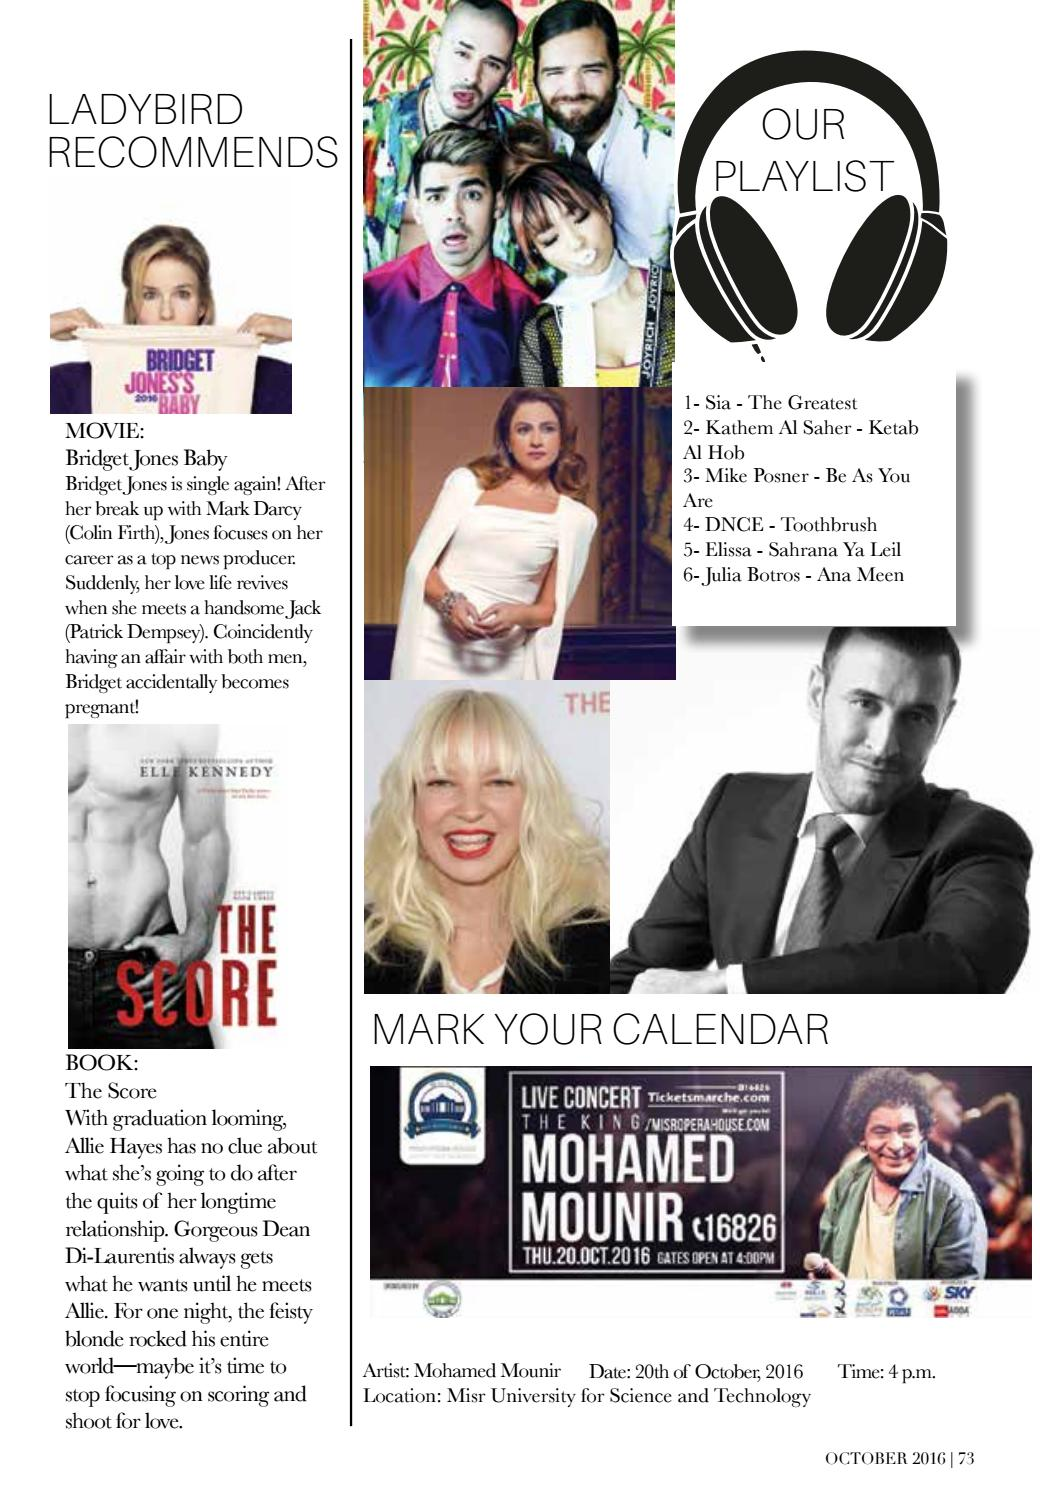 October issue 2016 by sky press - issuu